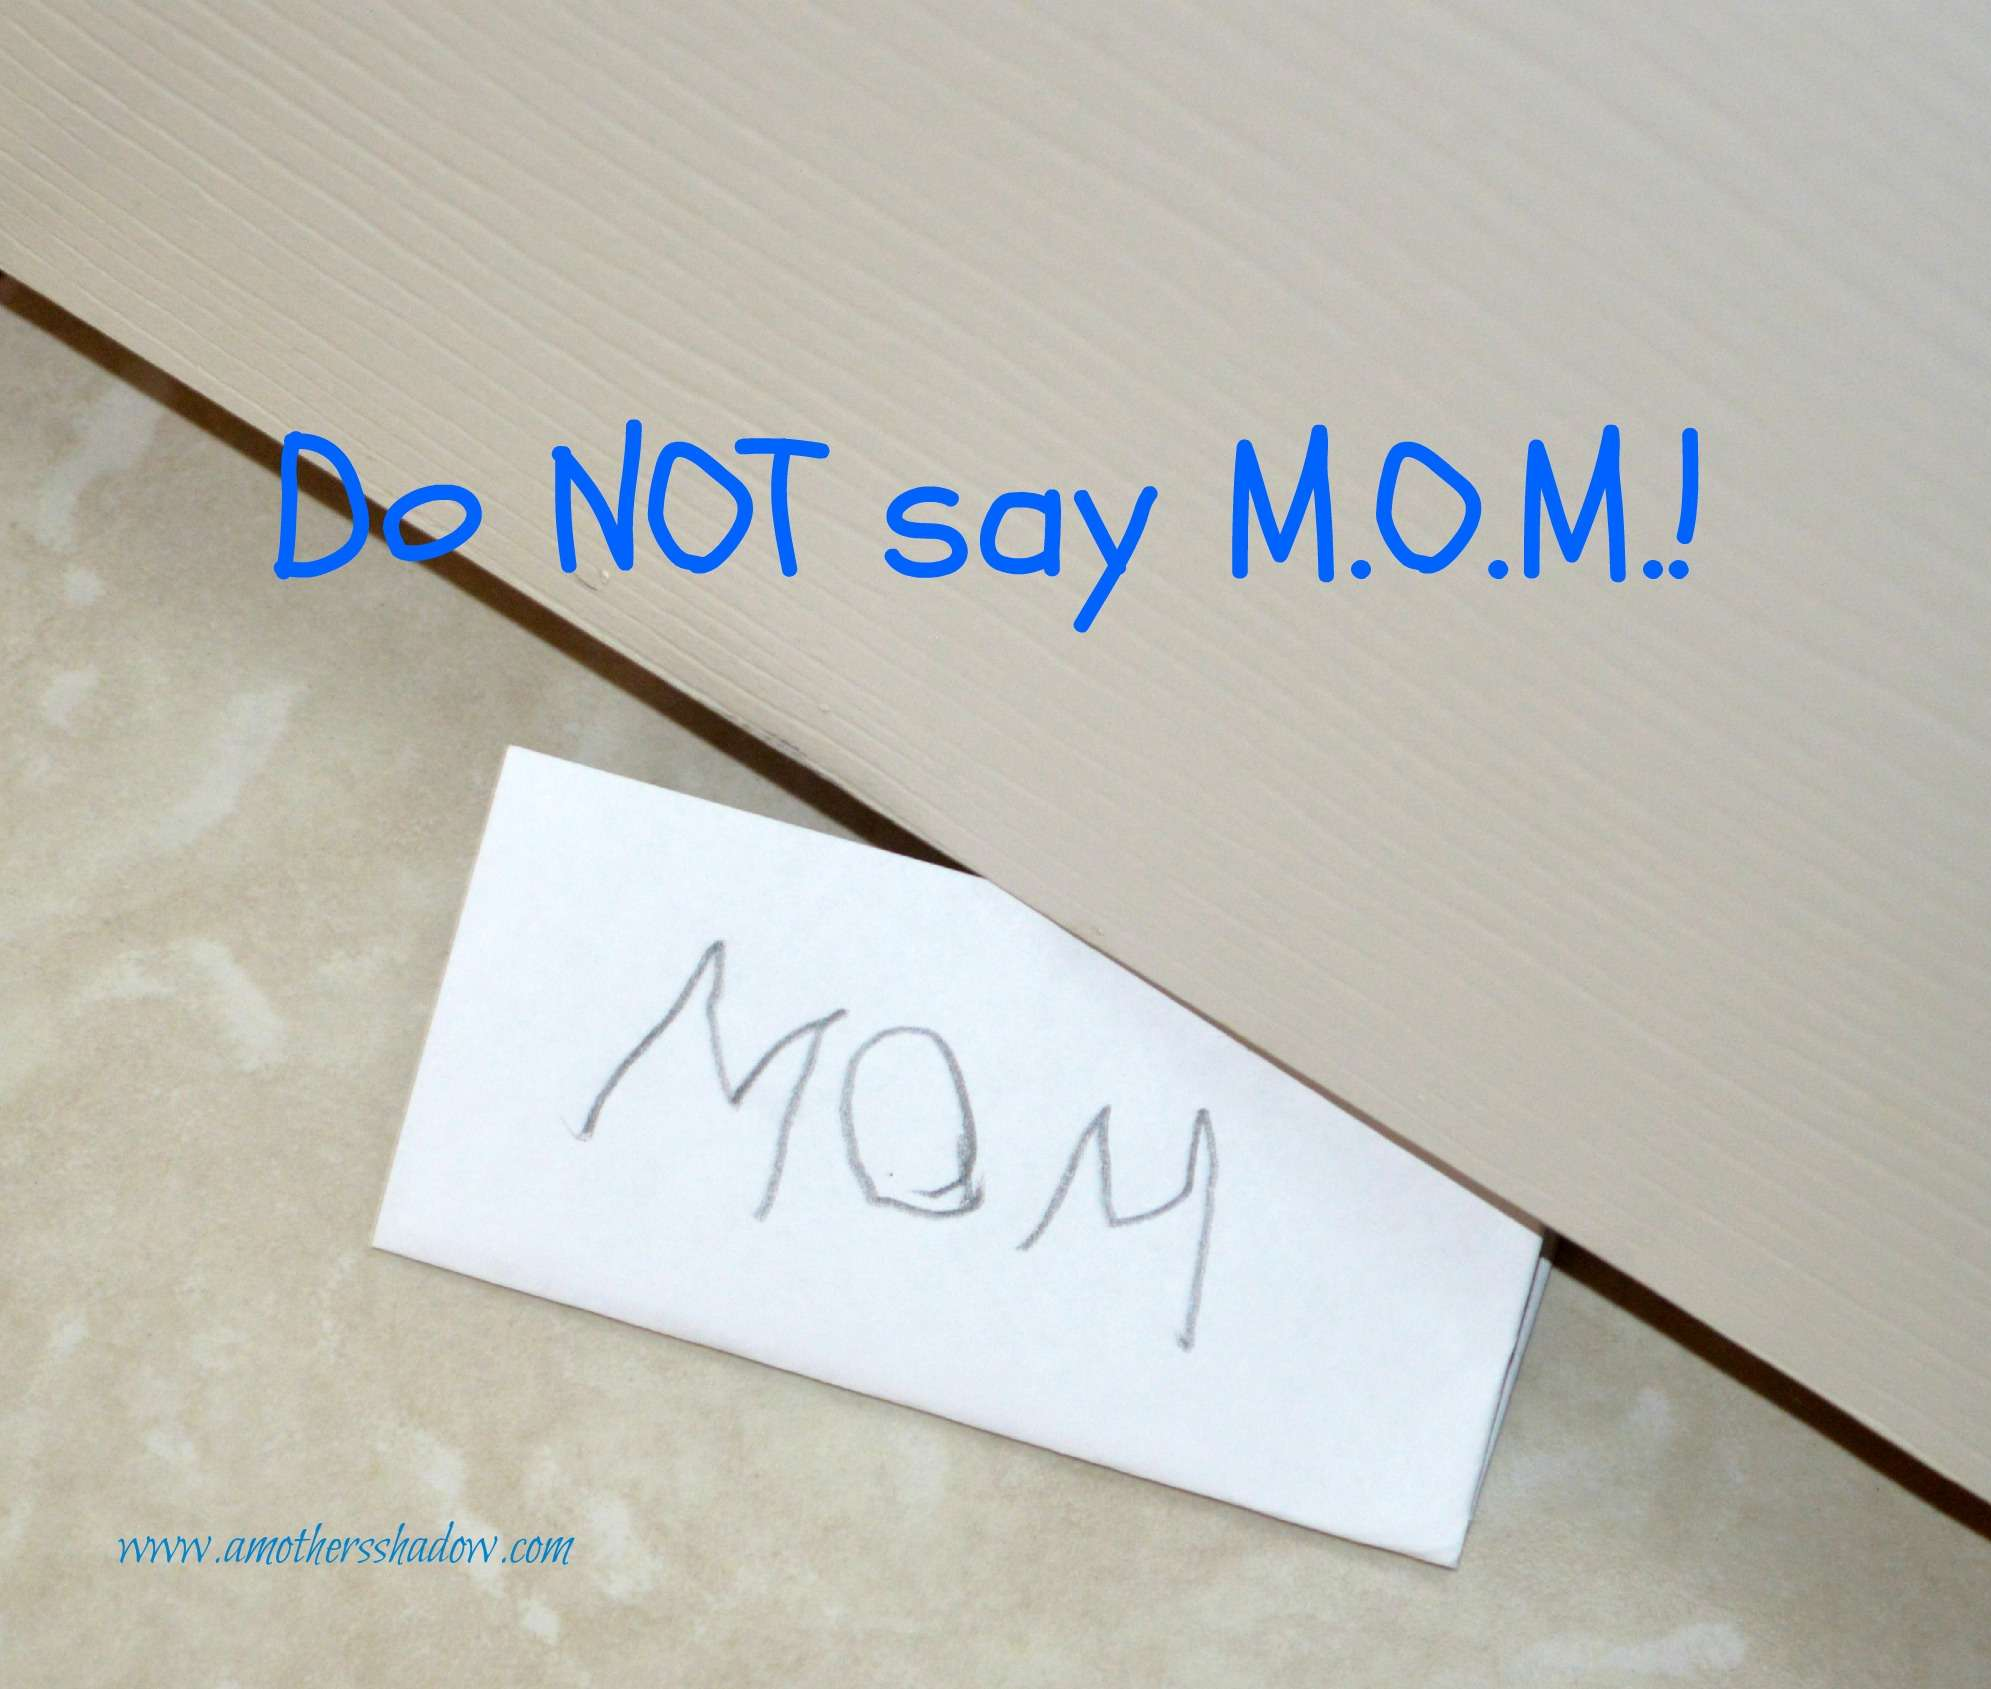 Do NOT say M.O.M! – National Prevent Child Abuse Month